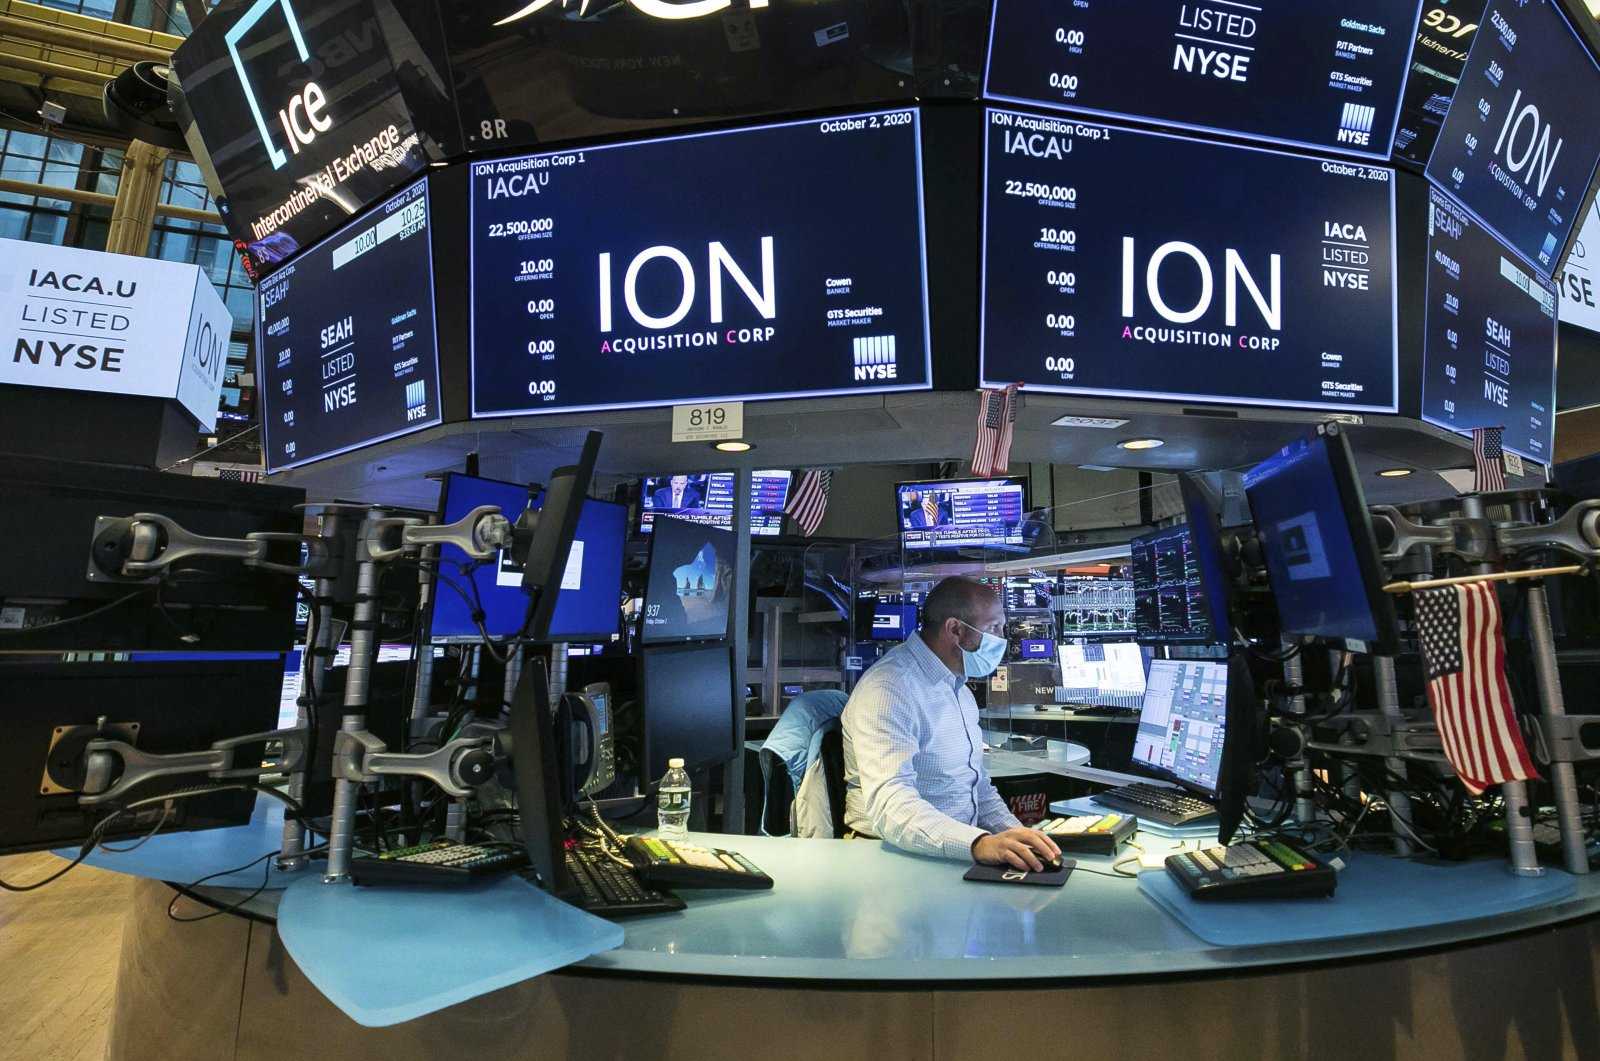 In this photo provided by the New York Stock Exchange, a specialist works at his post on the trading floor during the listing of ION Acquisition Corp 1 Ltd., from Israel, Friday, Oct. 2, 2020. (Courtney Crow / New York Stock Exchange via AP)